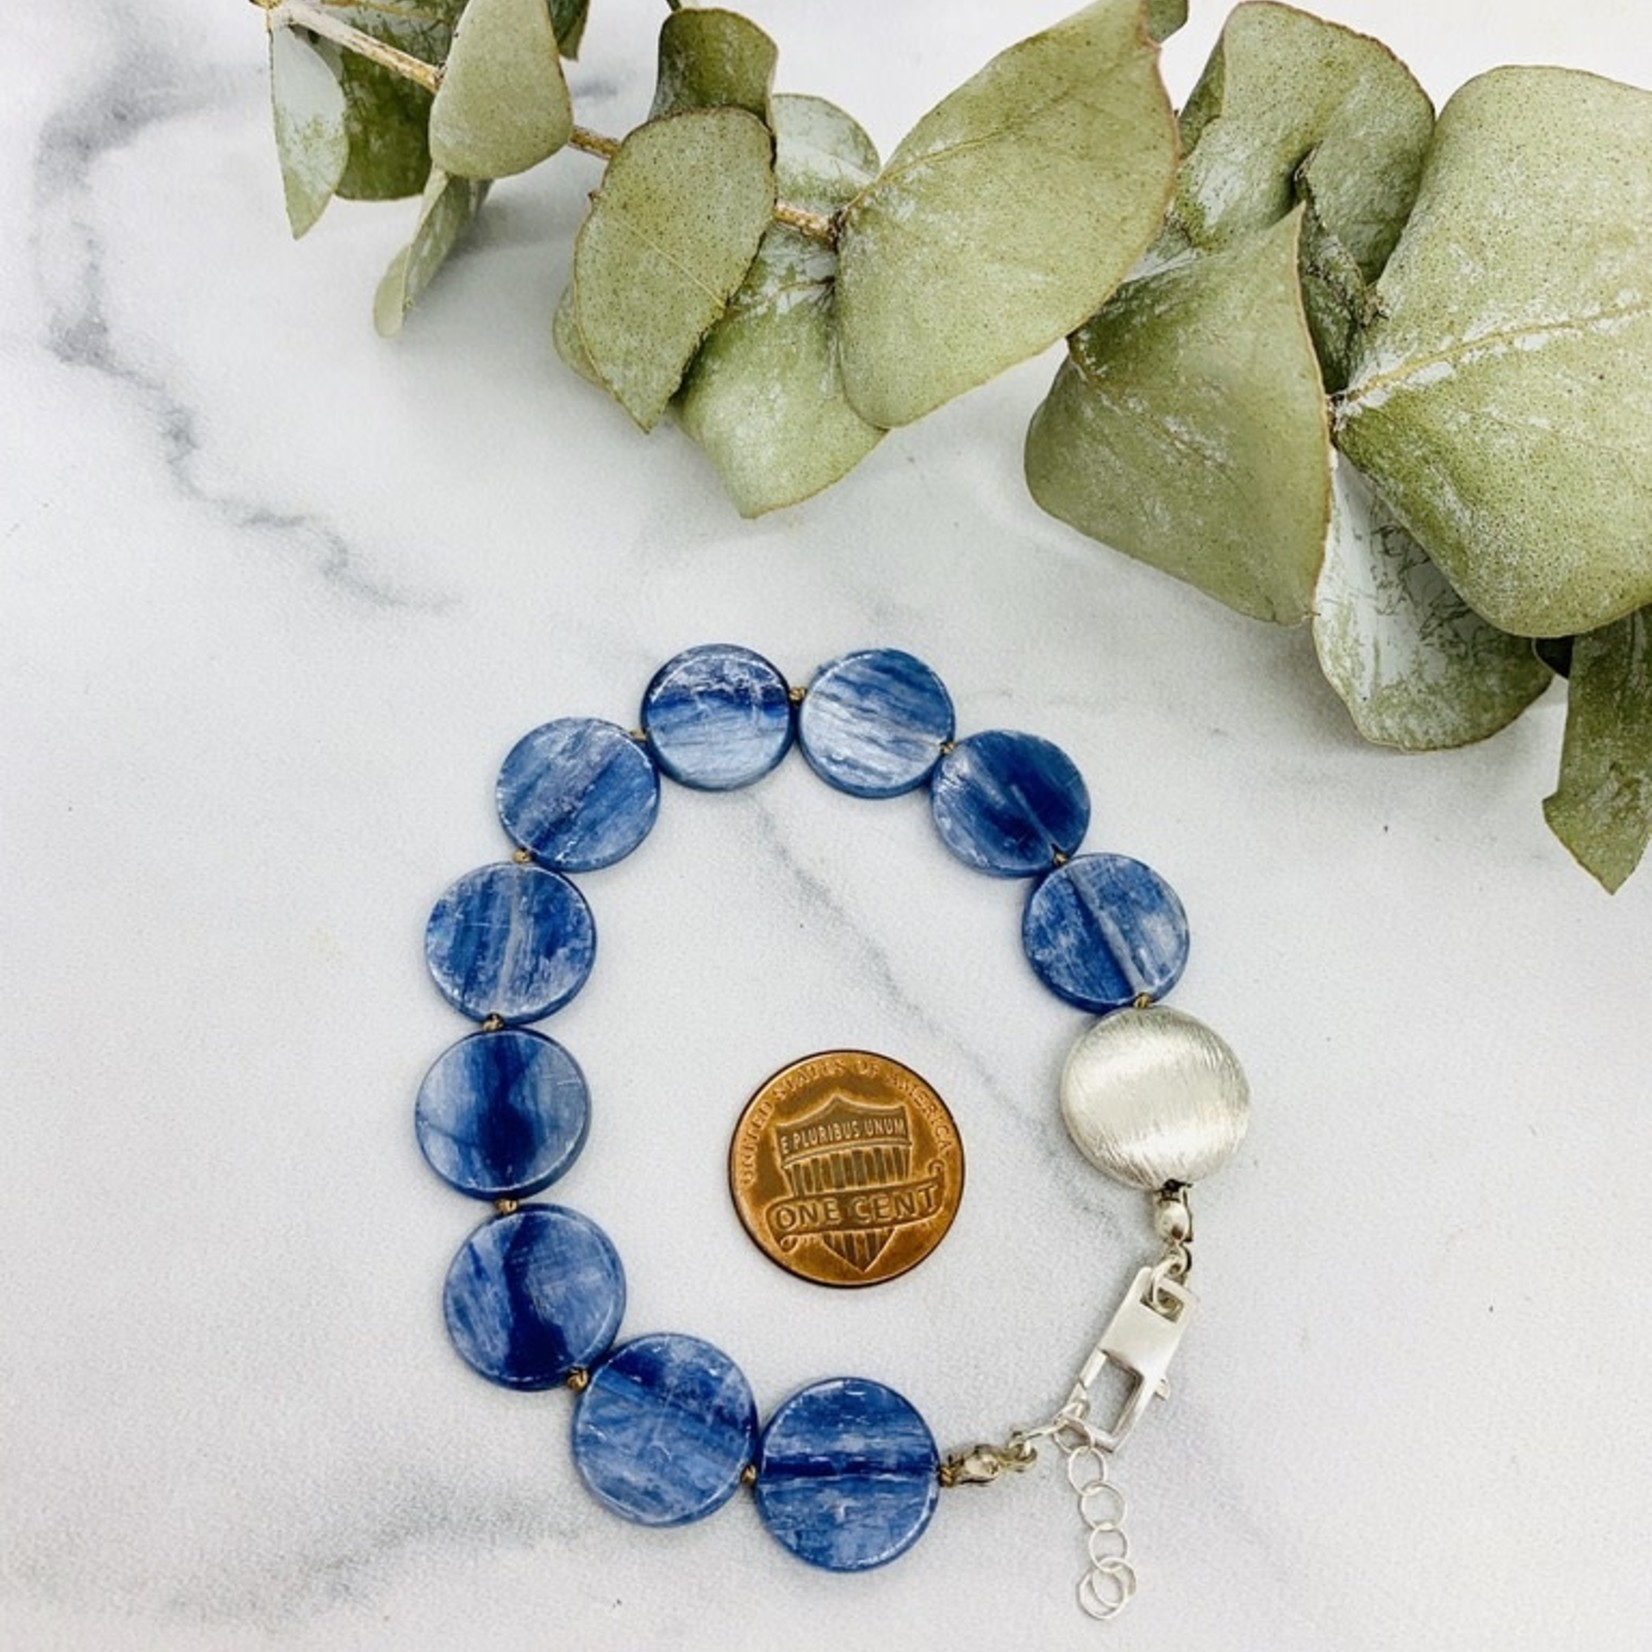 Handmade bracelet with 10 kyanite coins, 1 brushed silver knotted on natural silk